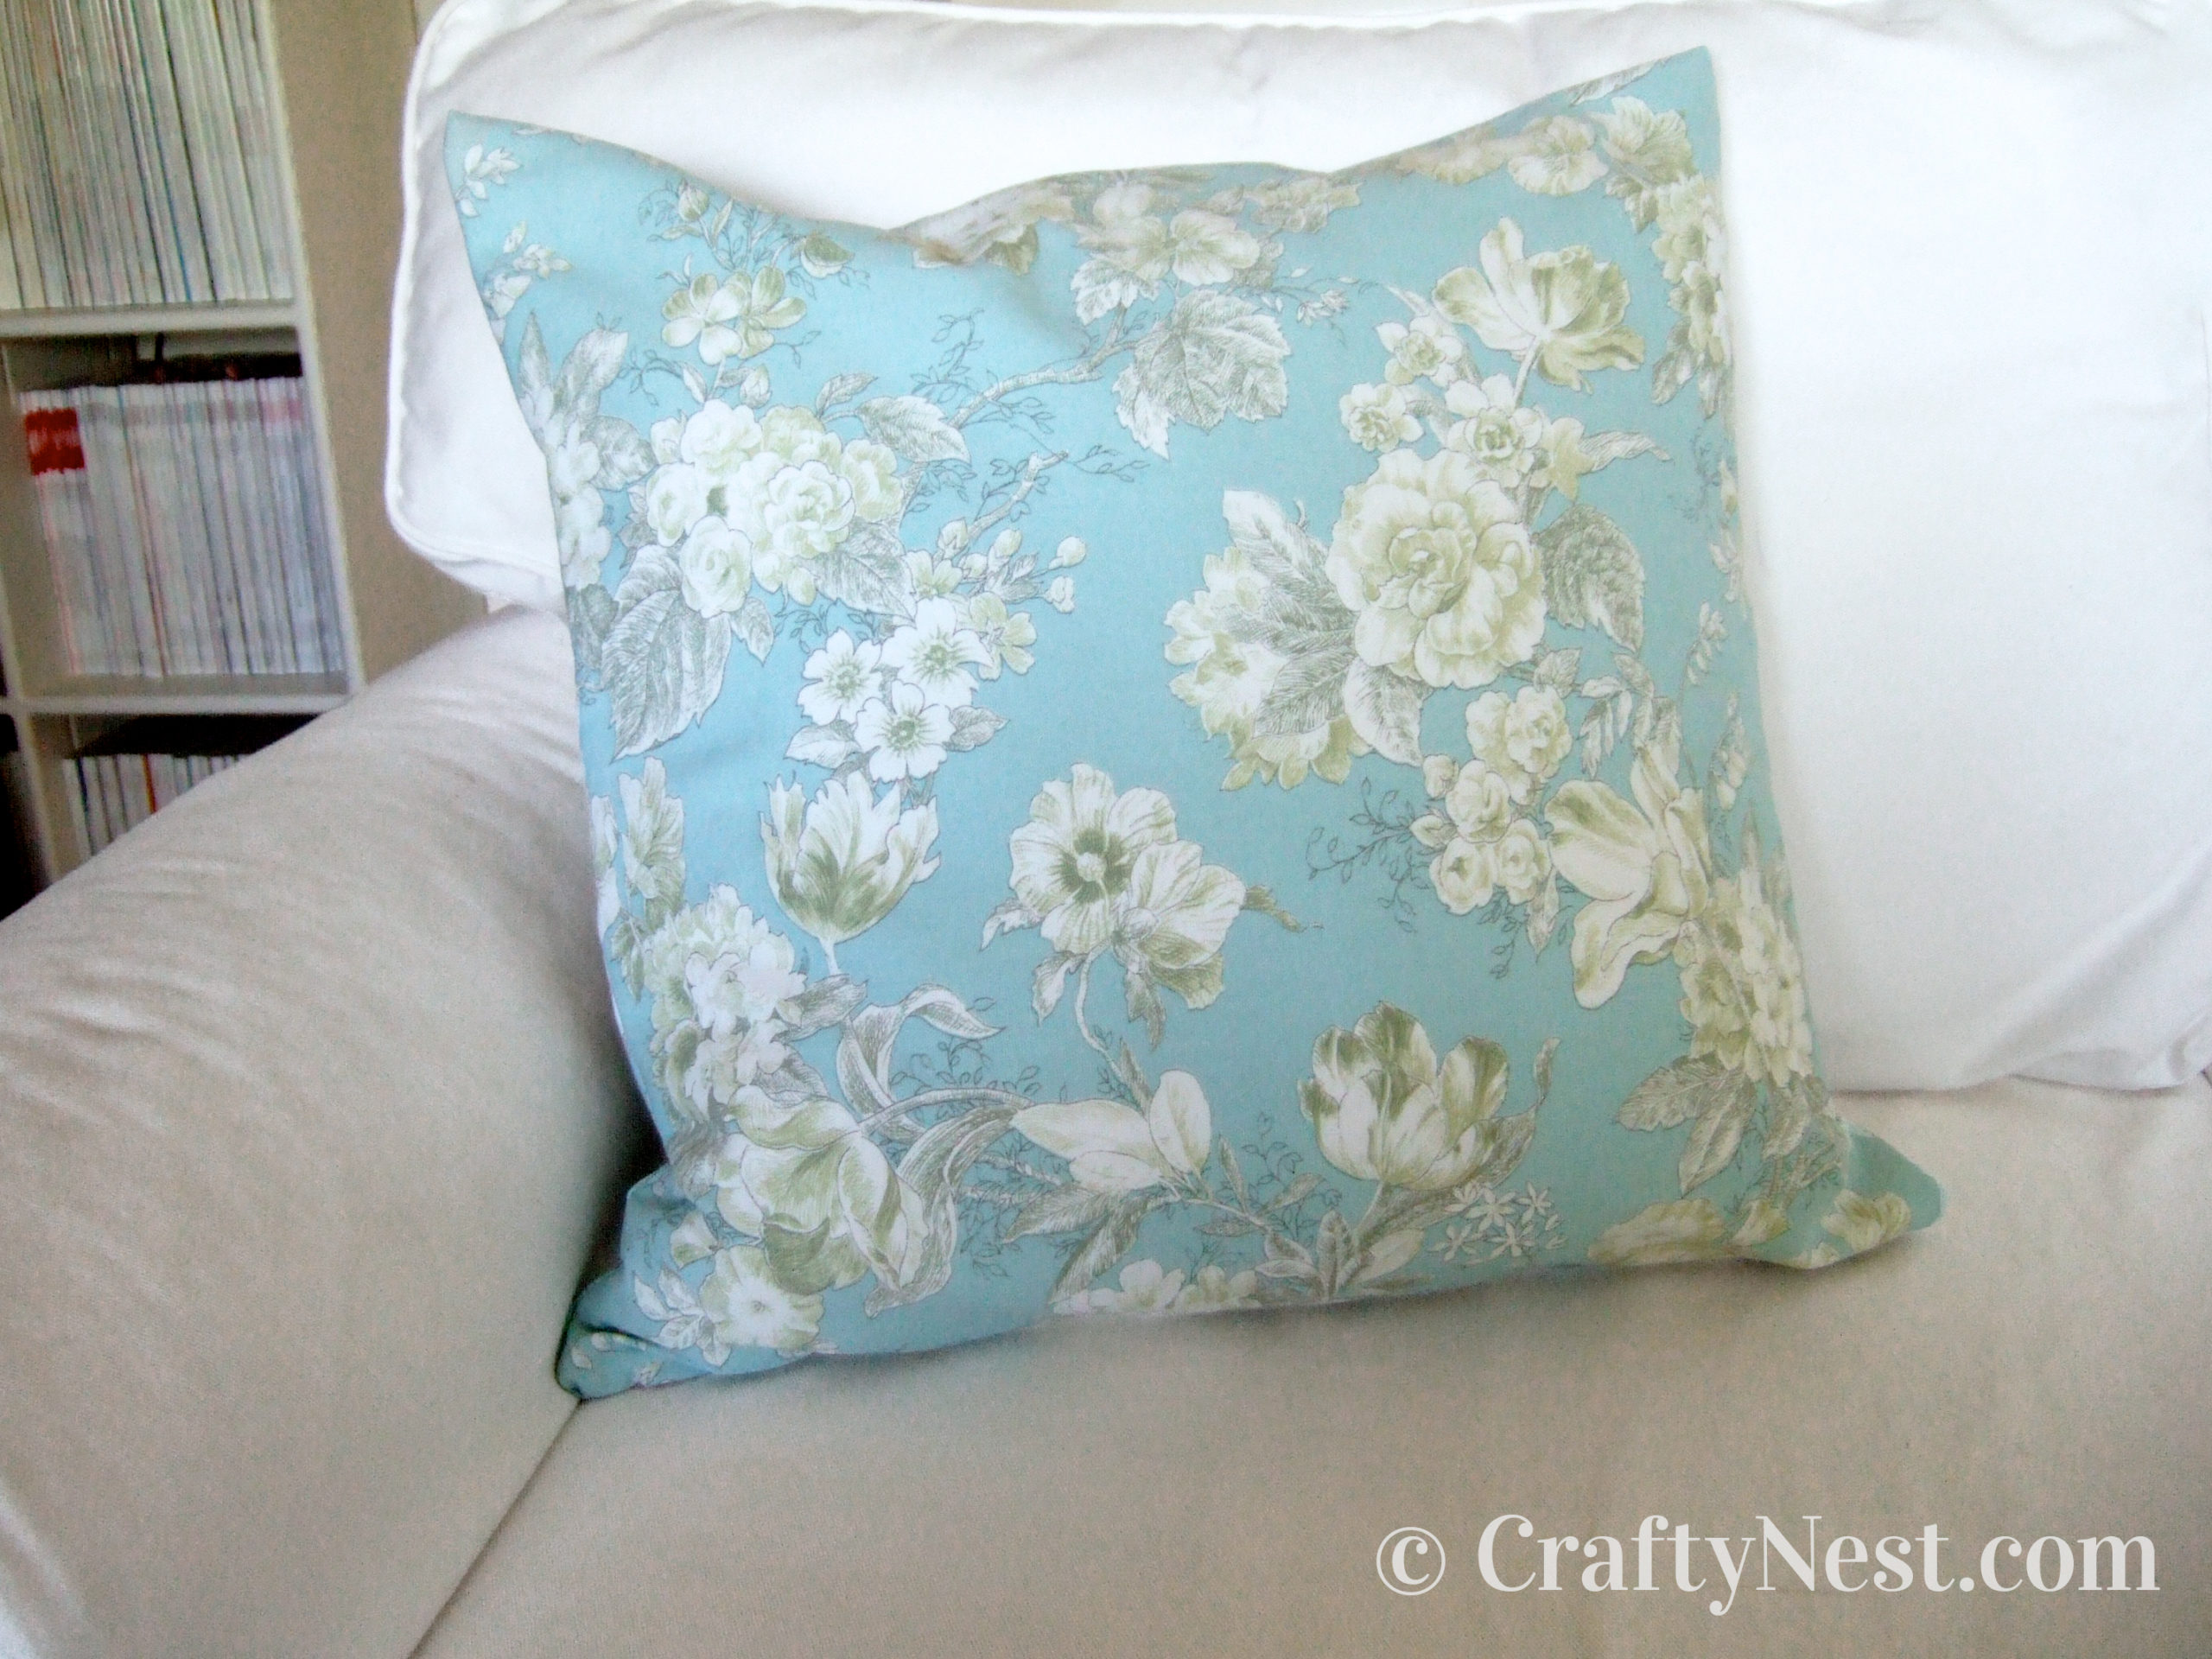 Toss pillow cover on sofa, photo